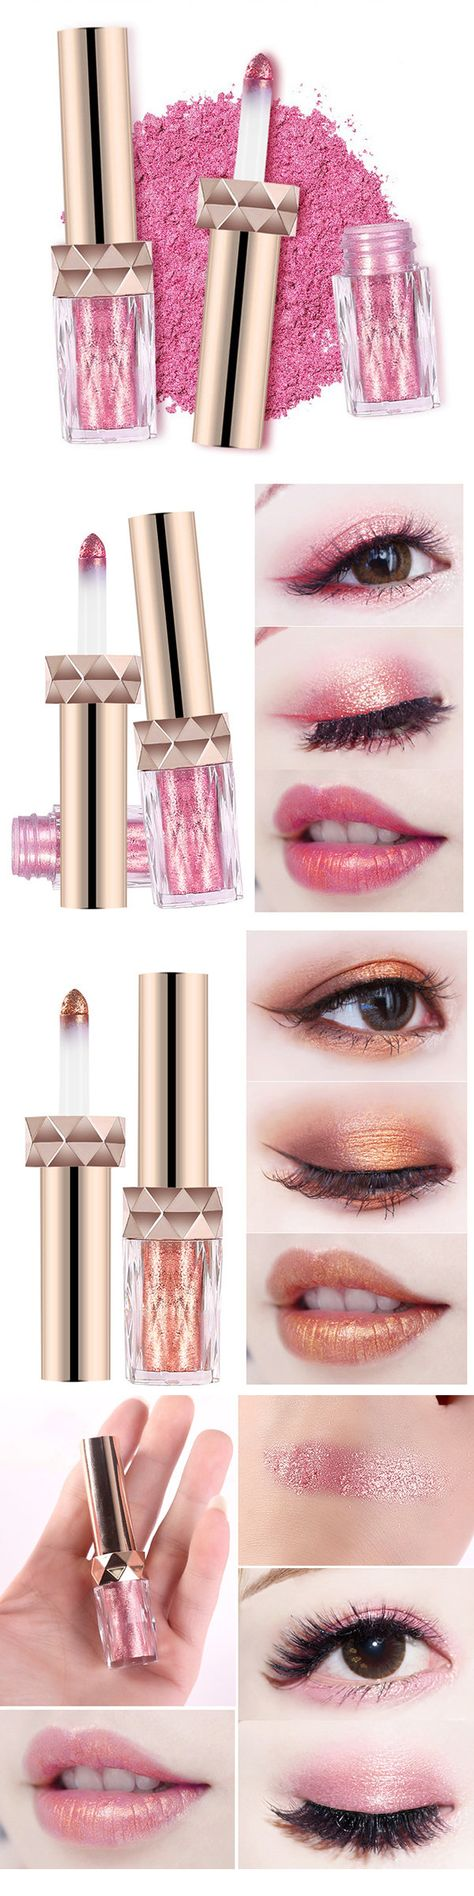 2 In 1 Mermaid Eye Shadow Makeup Waterproof Lipstick Loose